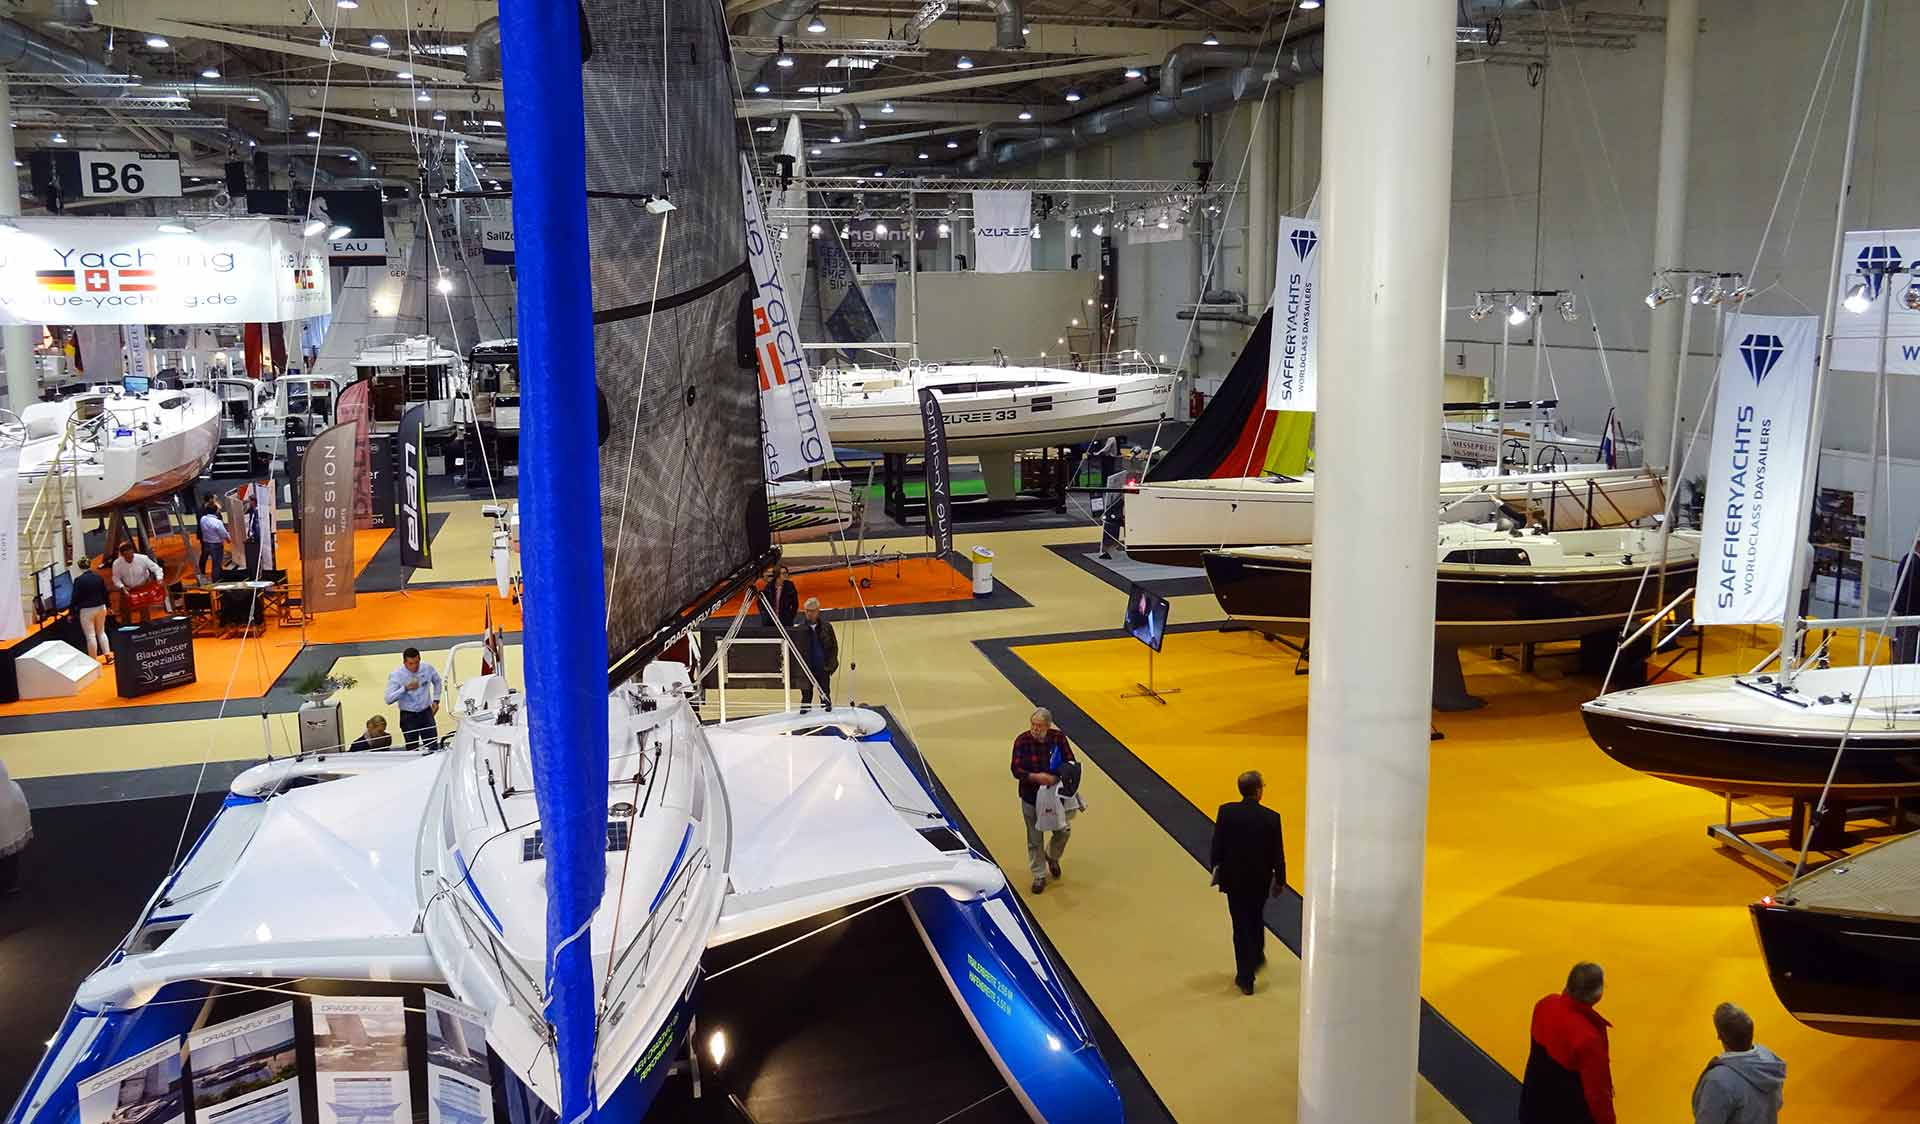 More space, less exhibitors in terms of sailing boats. A trend?